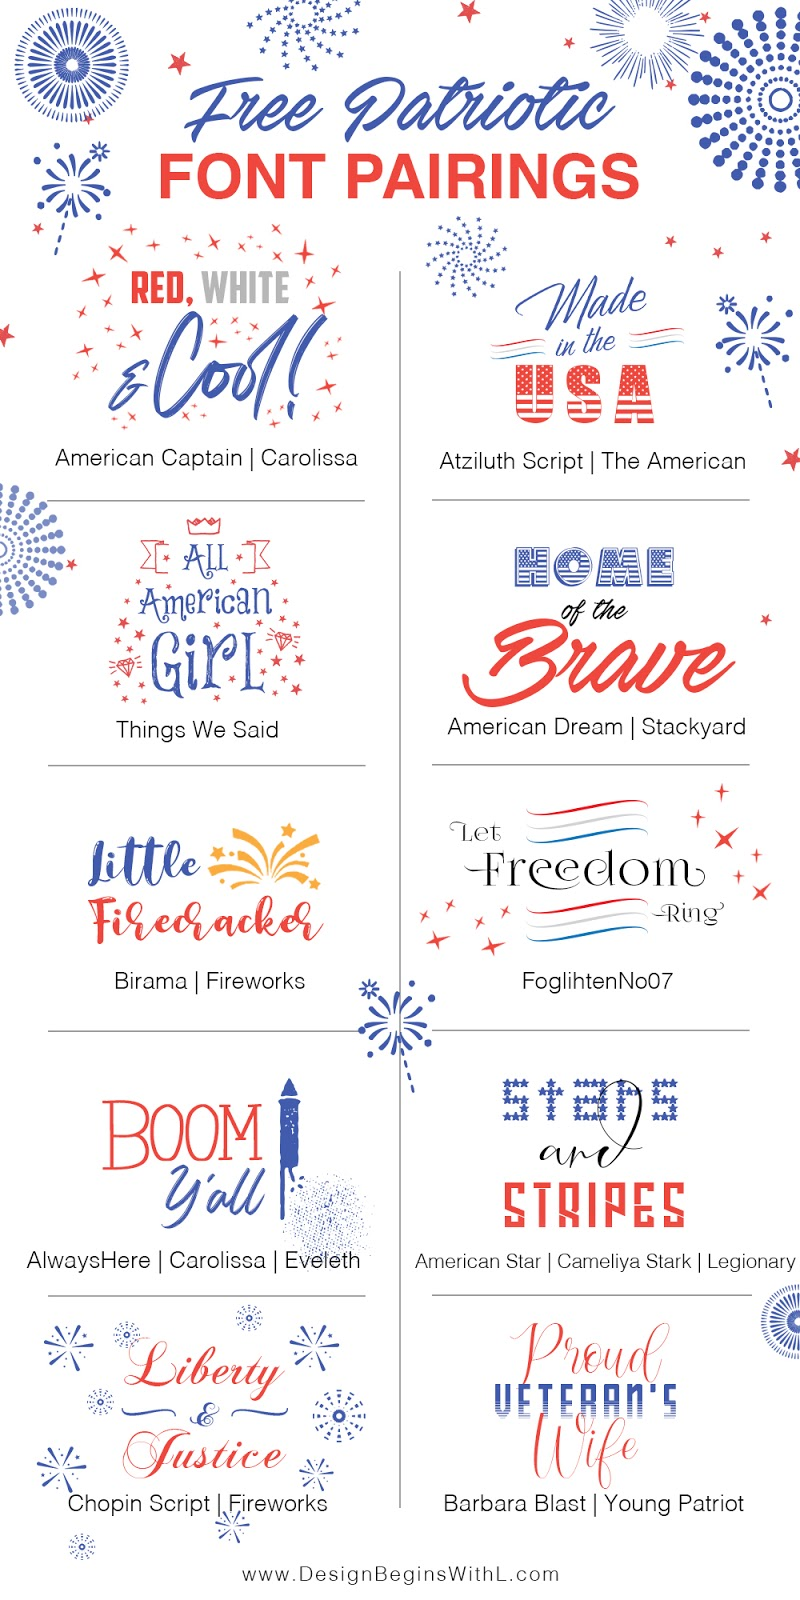 Free Patriotic Font Pairings for the Fourth of July